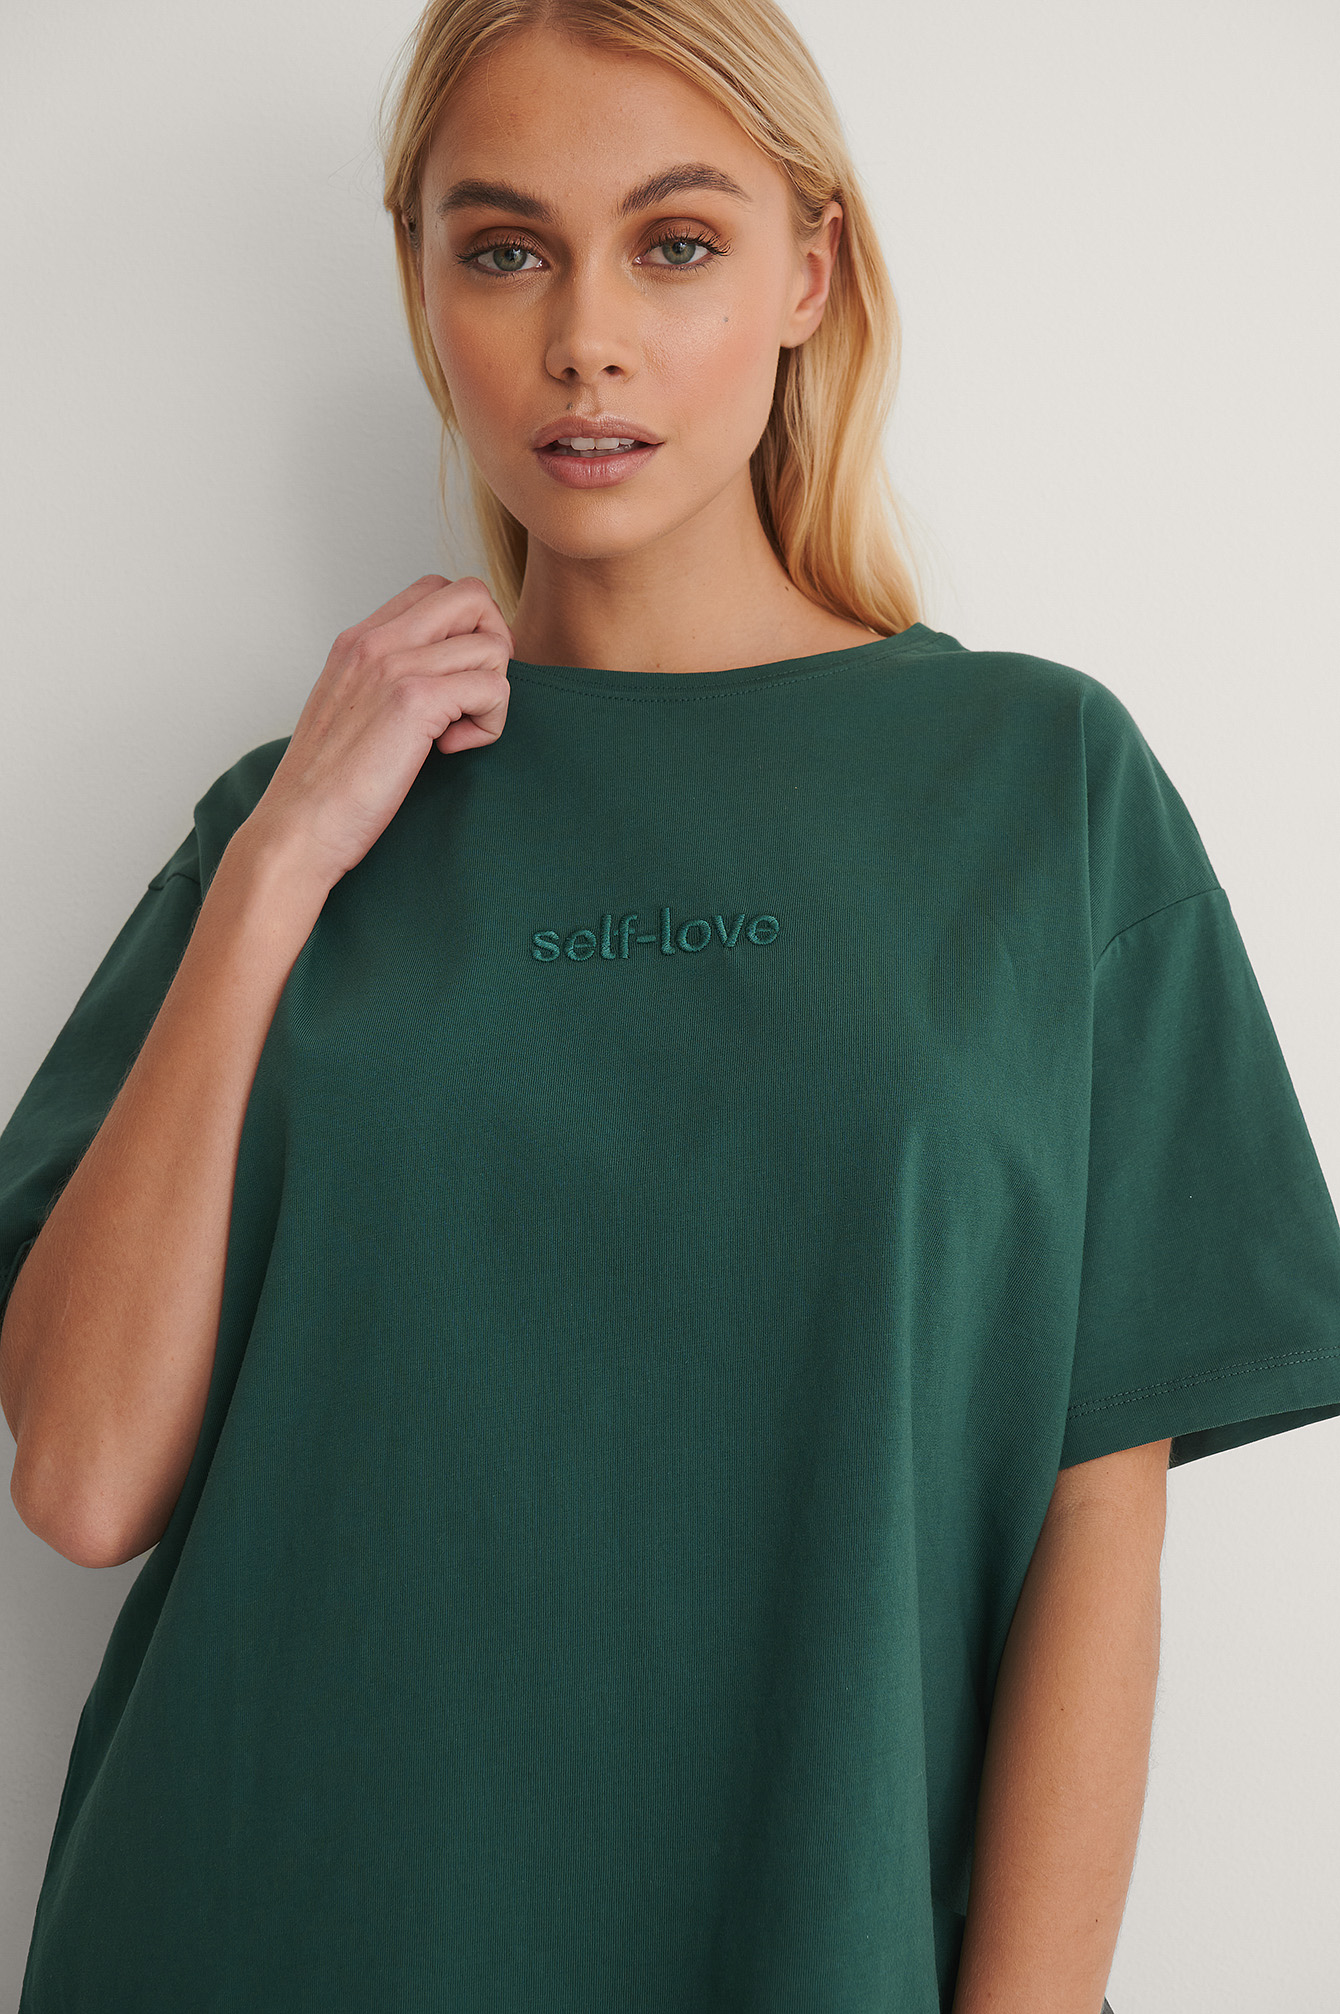 Green Organic Self Love Embroidery Print Tee